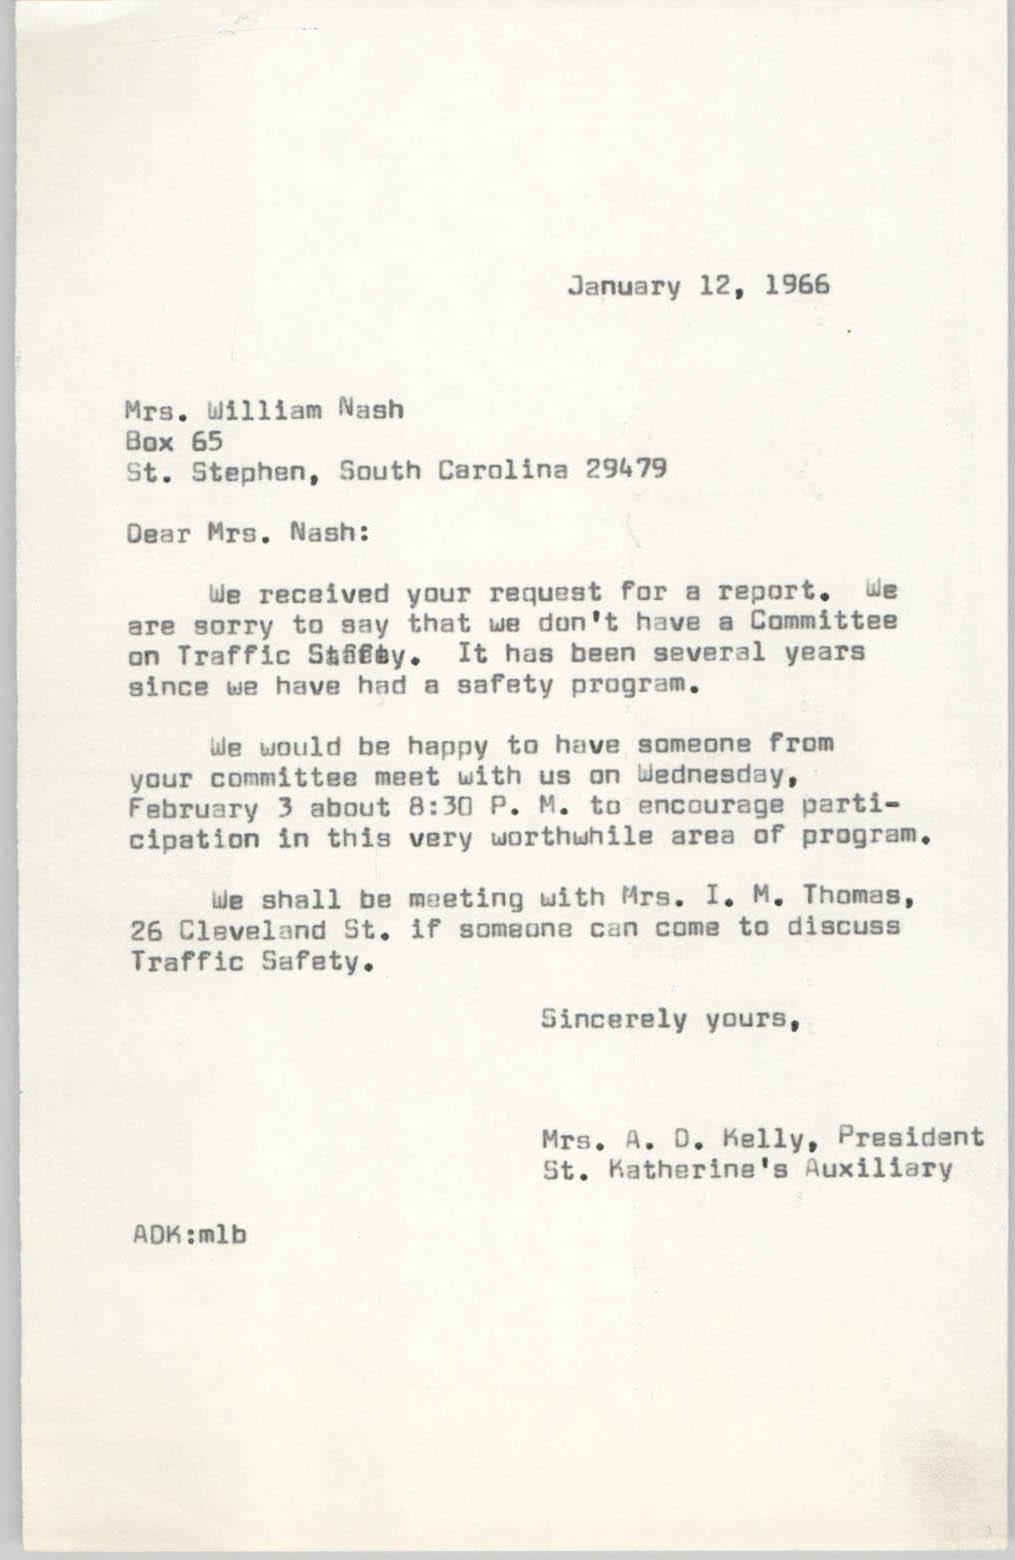 Letter from Anna D. Kelly to William Nash, January 12, 1966